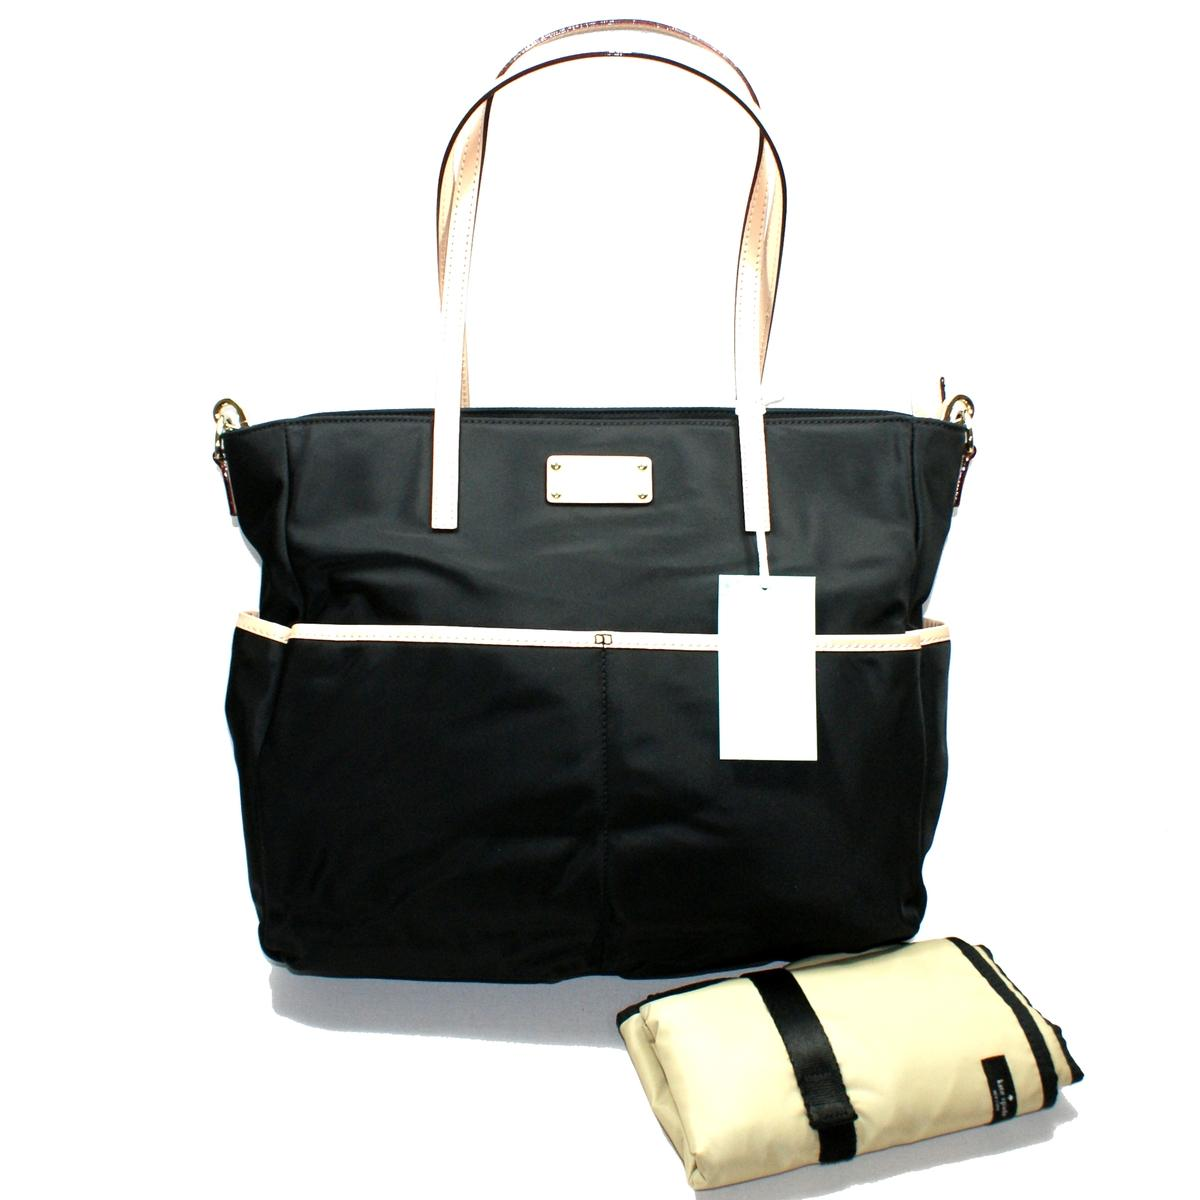 kate spade honey baby bag kennedy park black nylon diaper bag tote wkru2284 kate spade wkru2284. Black Bedroom Furniture Sets. Home Design Ideas